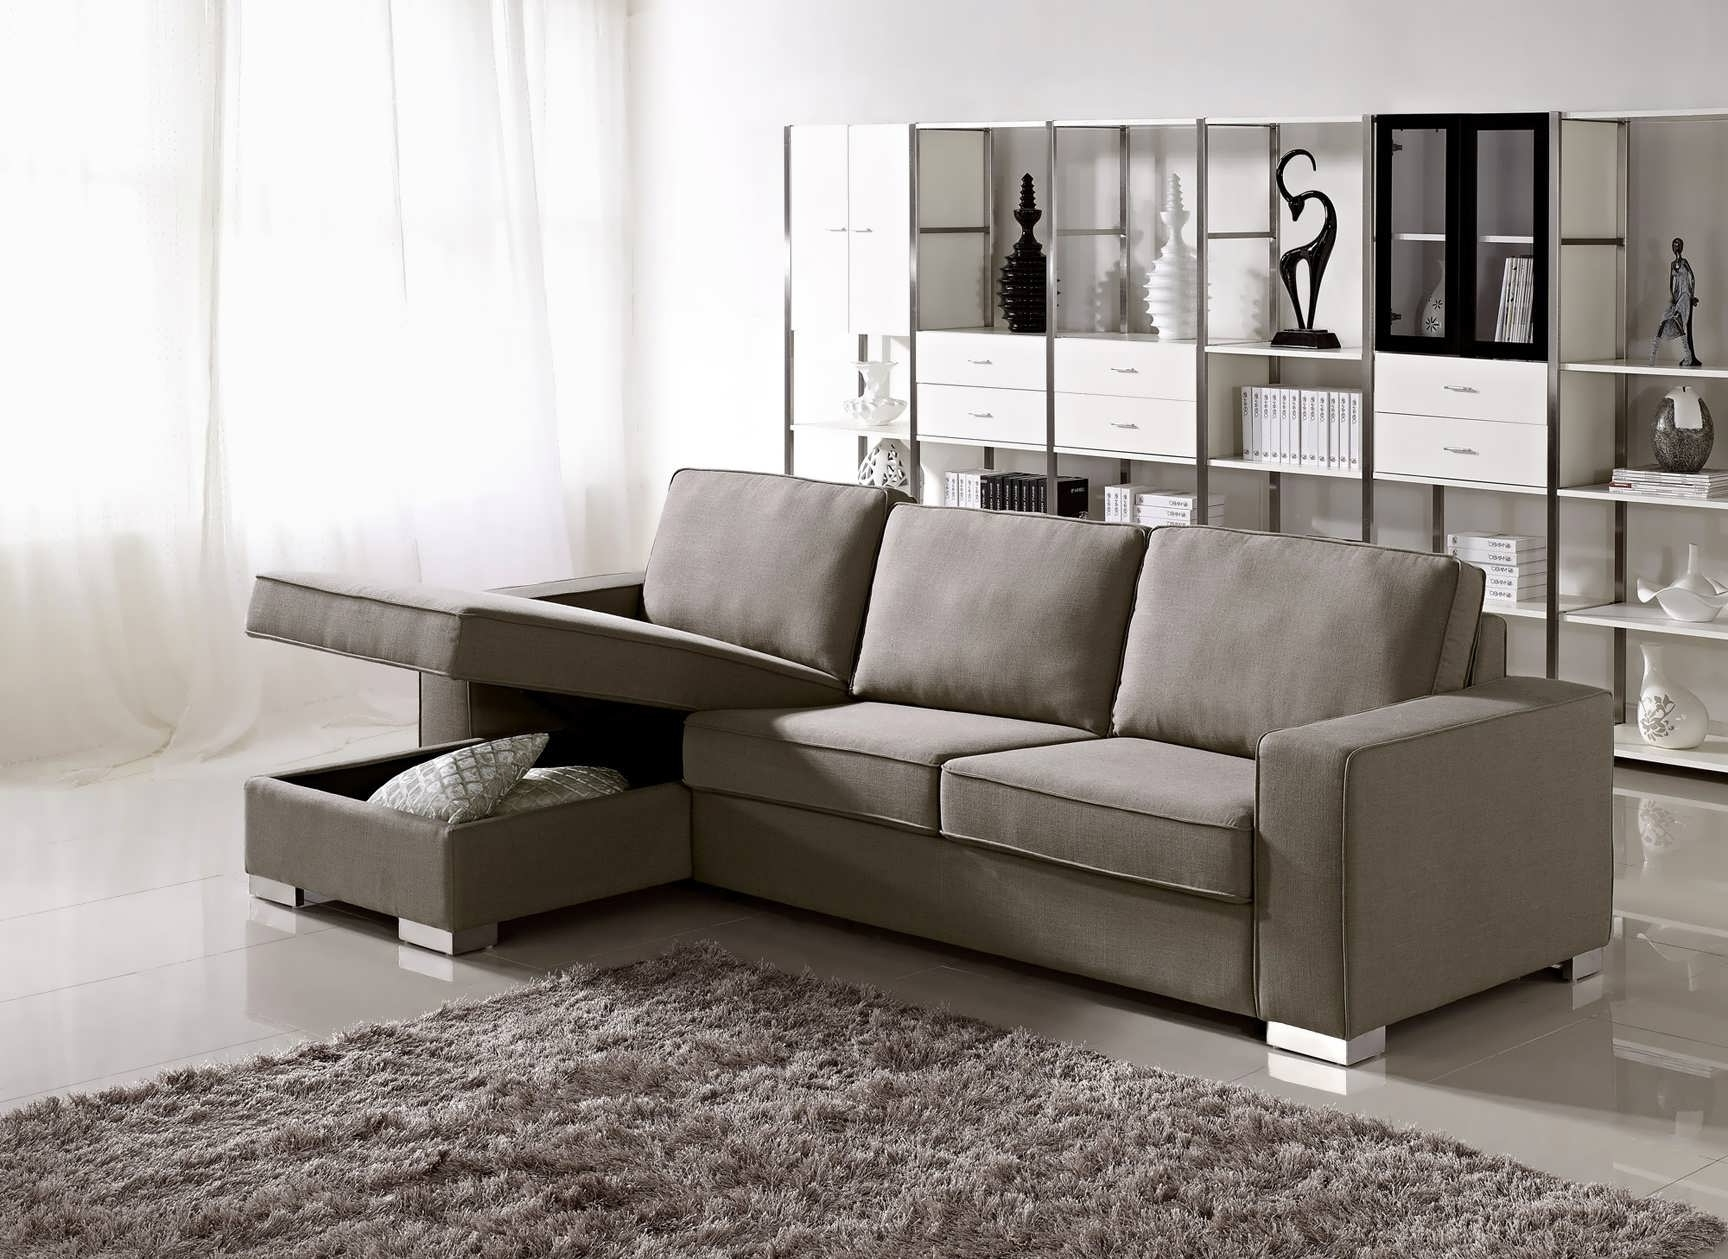 Double Chaise Sectionals For Famous Sofa : Chaise Sofa Double Chaise Sectional Small L Shaped Couch (View 3 of 15)